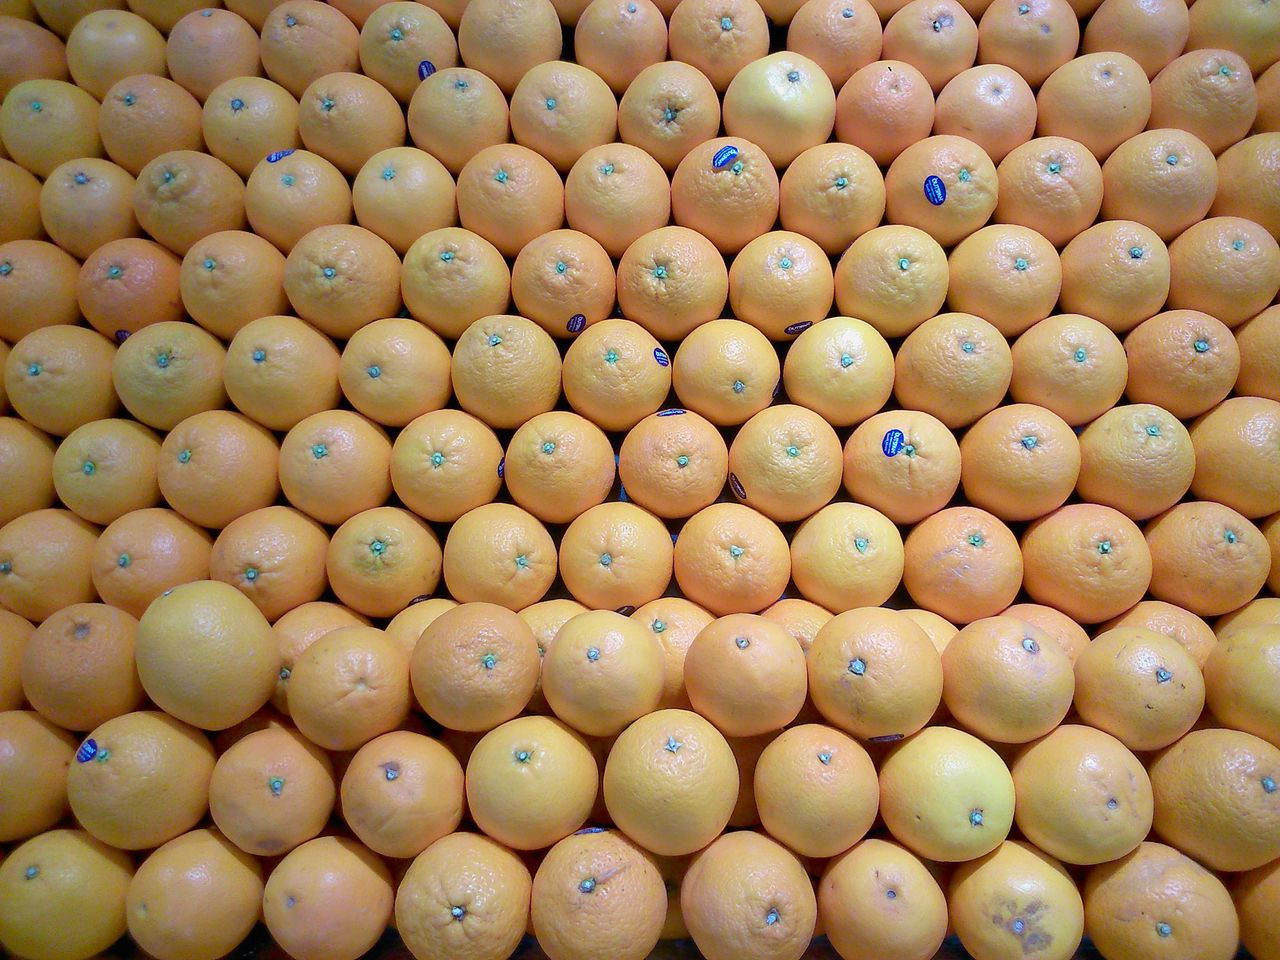 Backgrounds Close-up Food Fruit Goods Large Group Of Objects Market No People Orange Sour